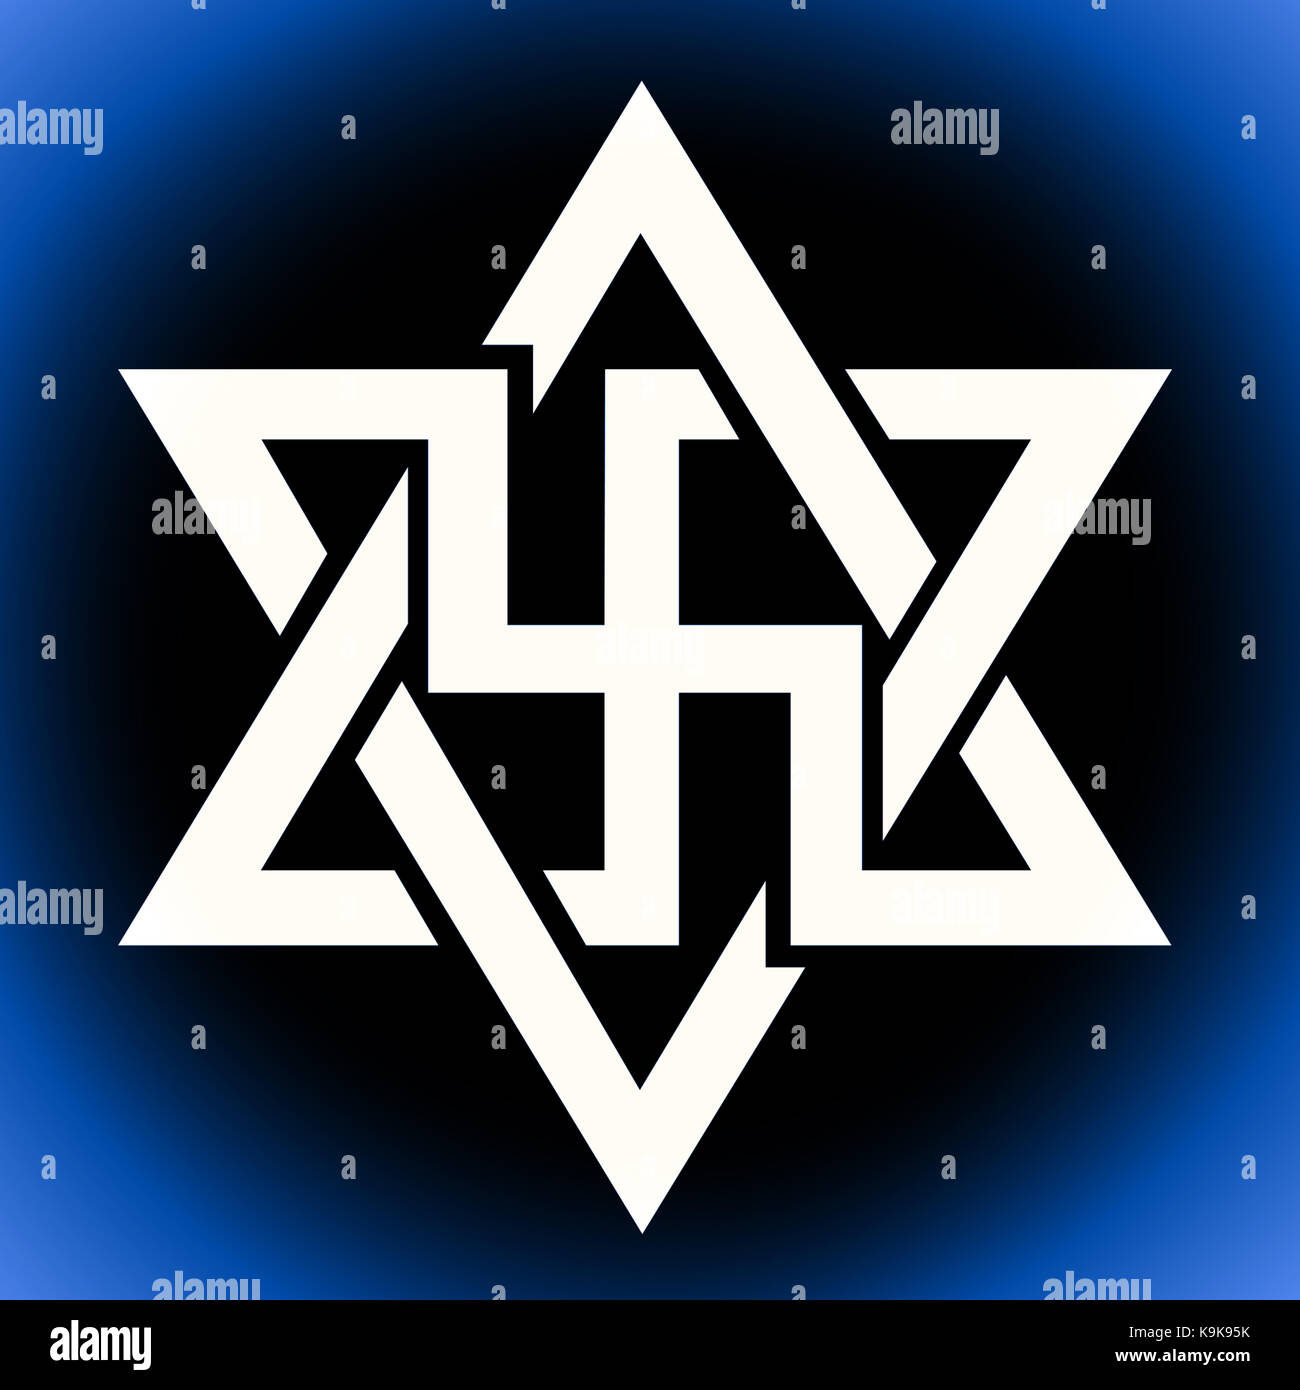 The Raelian symbol with the swastika embedded on the Star of David of the Raelism also known as Raelianism movement - Stock Image